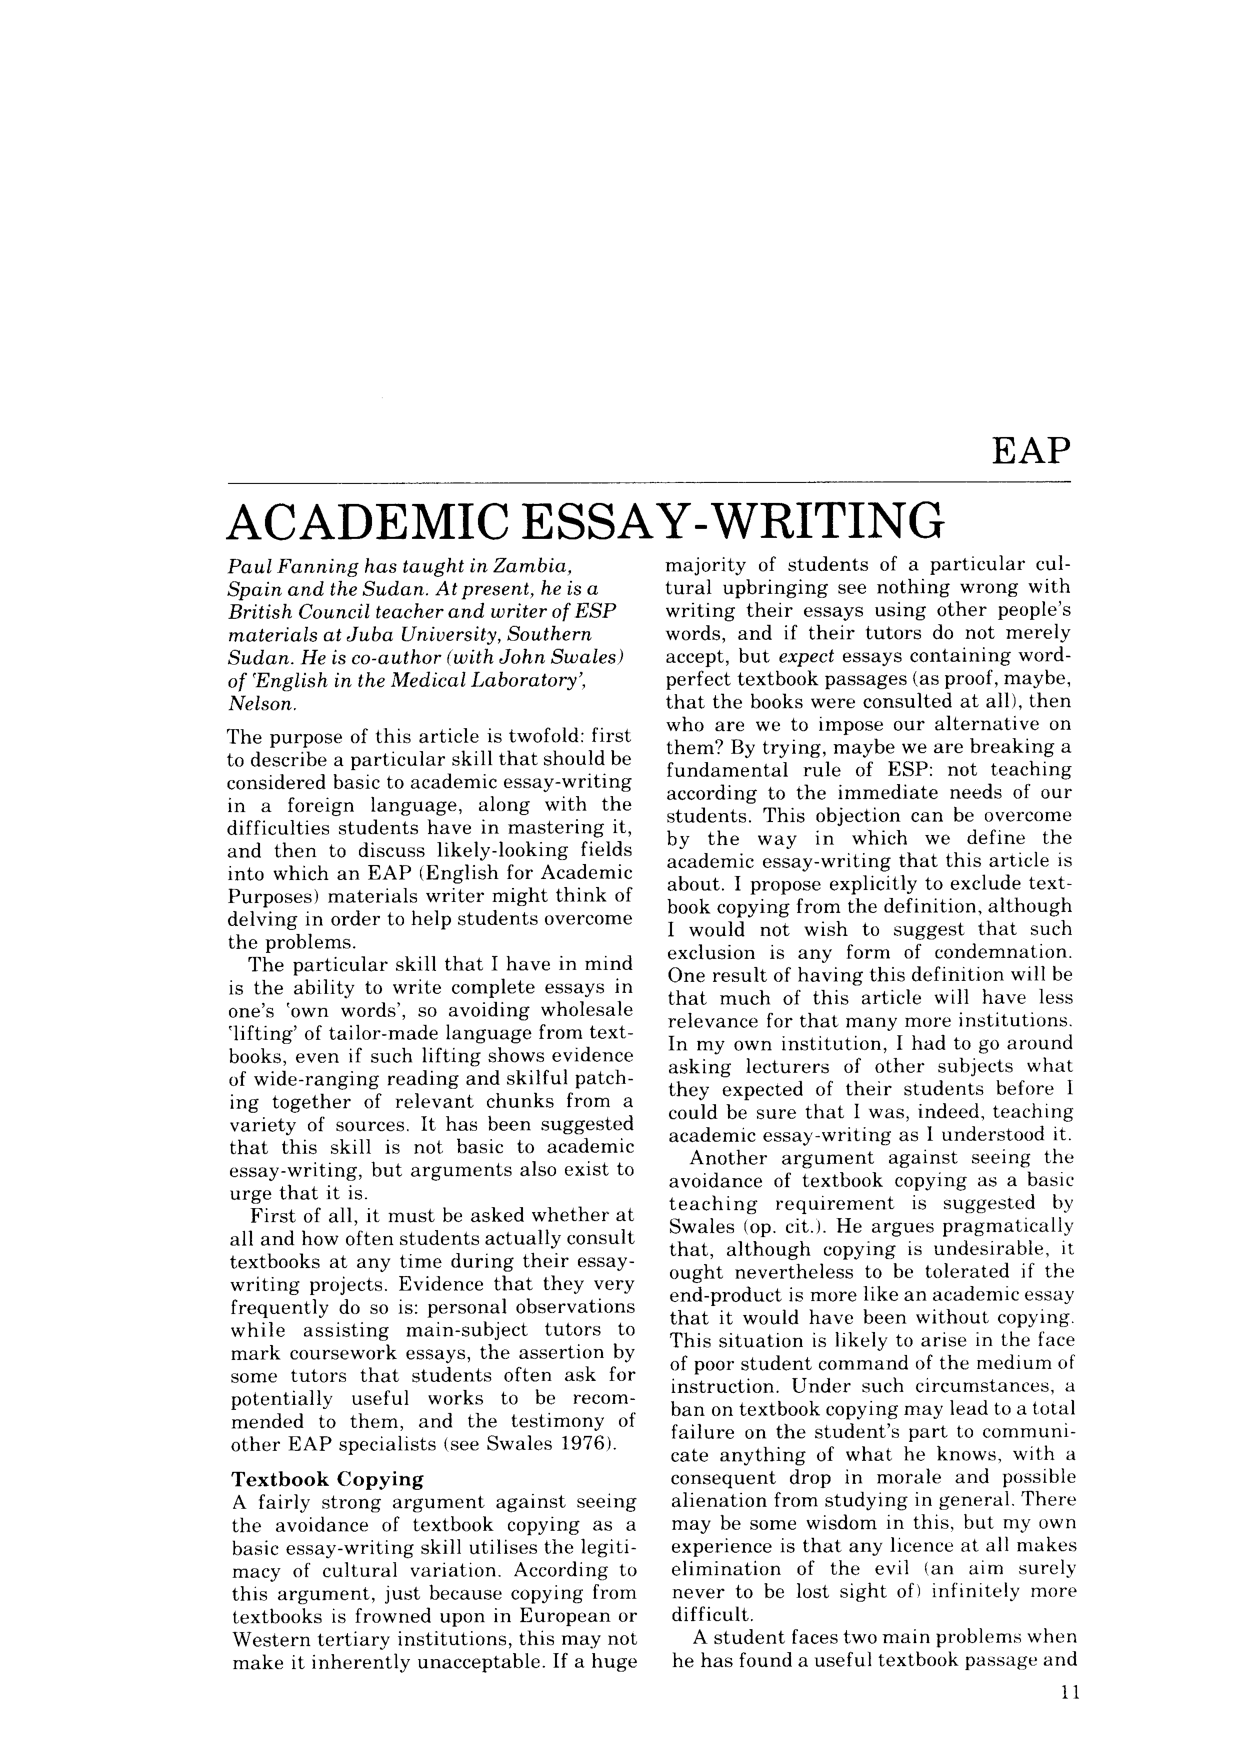 Custom academic writing